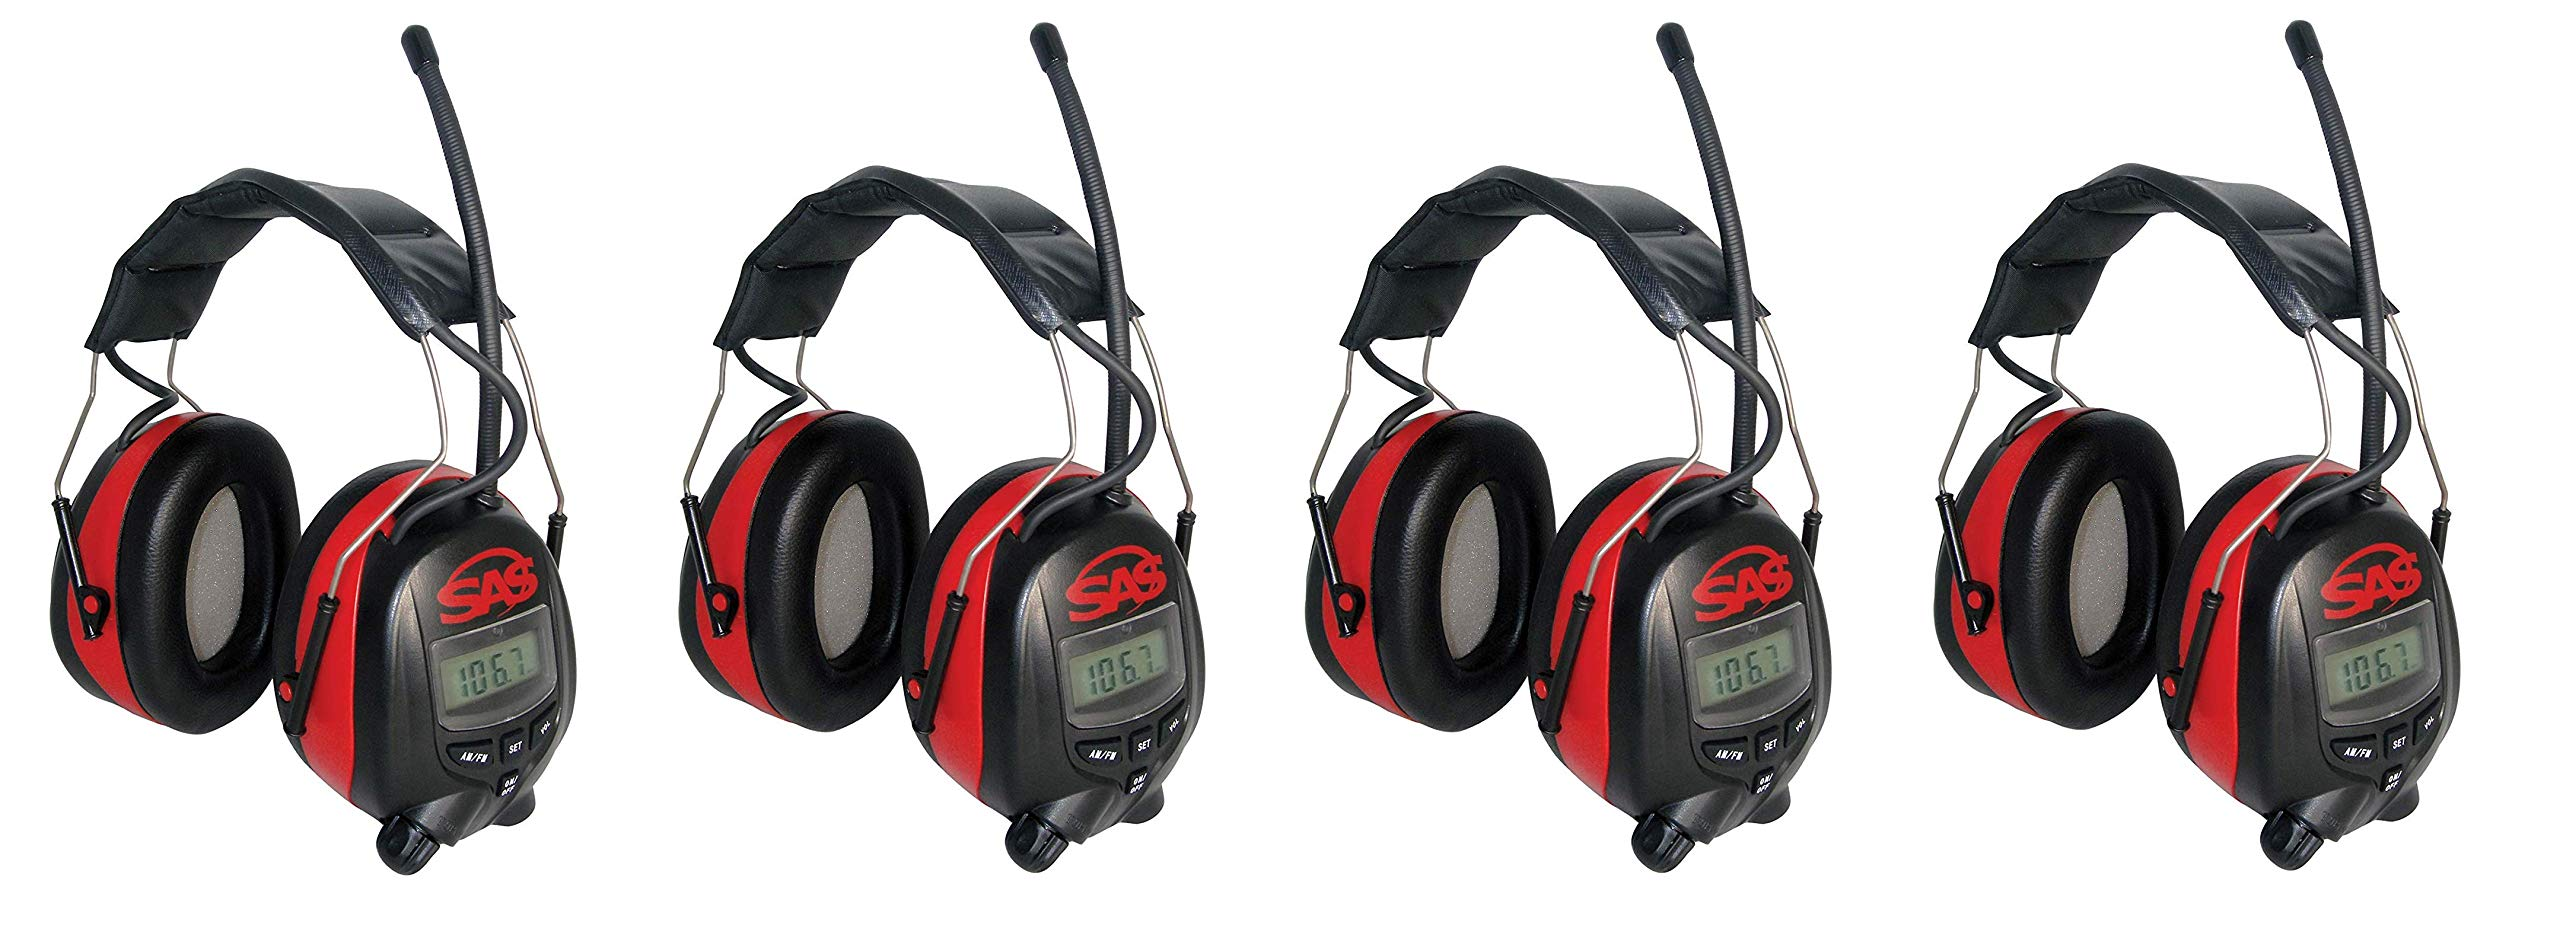 SAS Safety 6108 Digital Earmuff Hearing Protection with AM/FM Radio and MP-3 Ready (4-Pack)